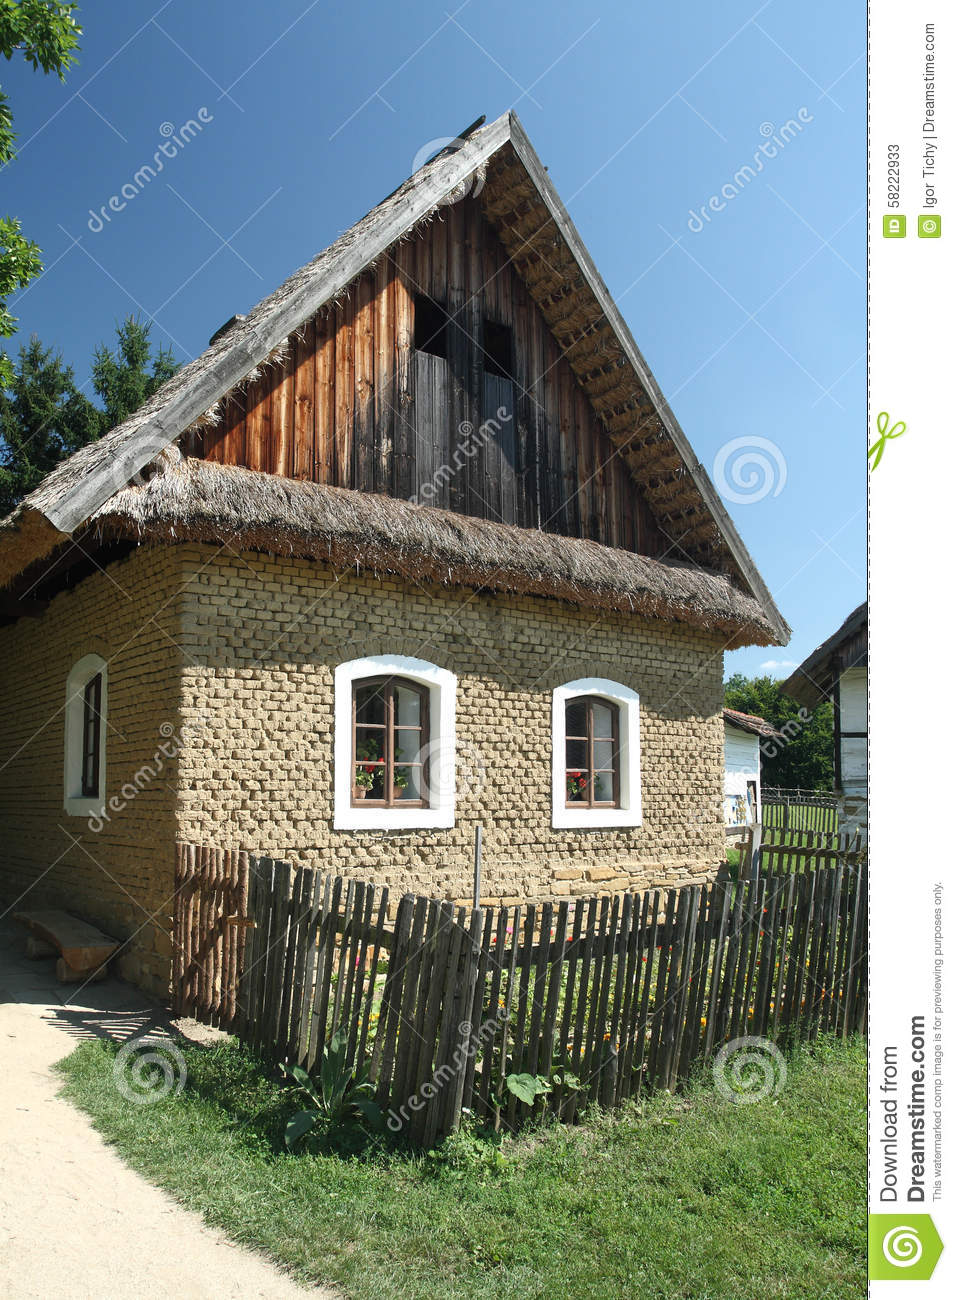 Old Country House Made Of Mud Bricks Stock Image Image Of Museum Picket 58222933